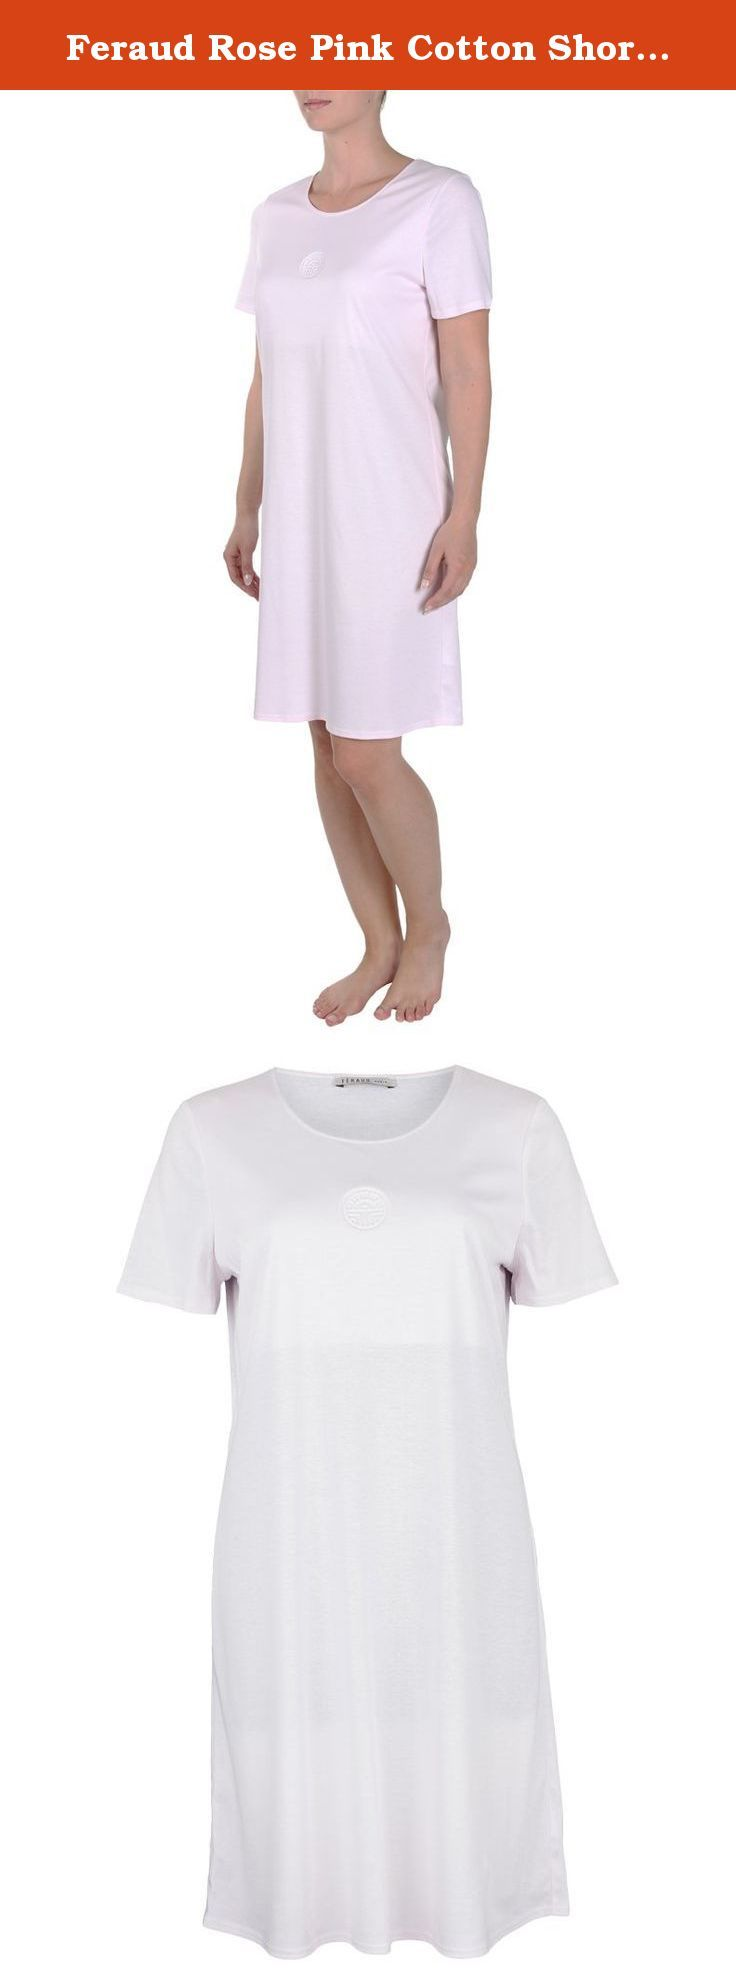 Feraud Rose Pink Cotton Short Sleeve Nightdress 3883006-10038 20 UK / 46 EU. Love the pretty light pink shade of this luxurious cotton short sleeve nightdress. Finished with Feraud signature logo at the bust. 90cm in length. A beautiful nightwear choice.